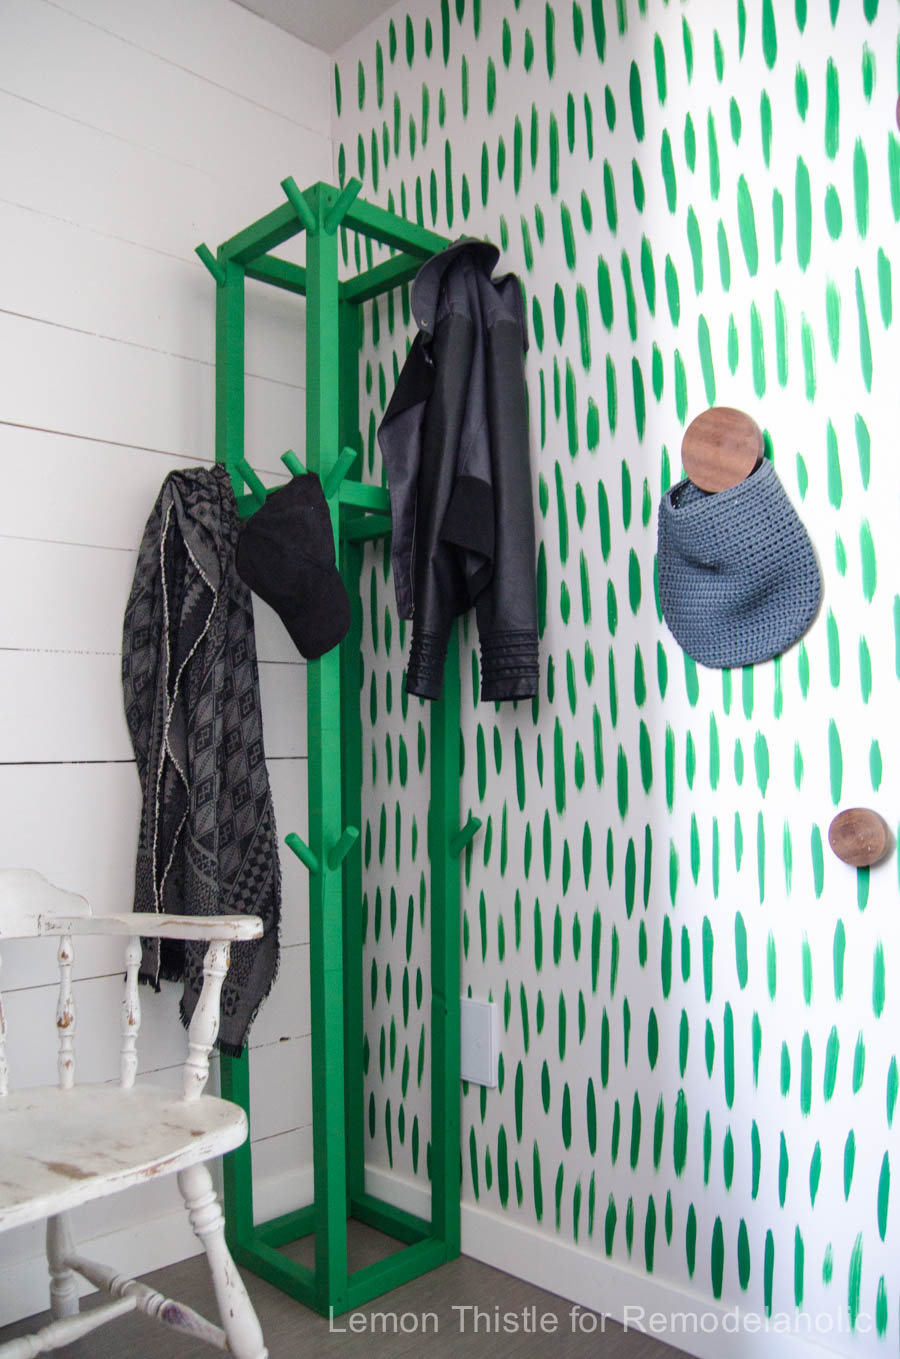 I Love This DIY Wooden Coat Rack  The Cube Shape And Green Paint Is So